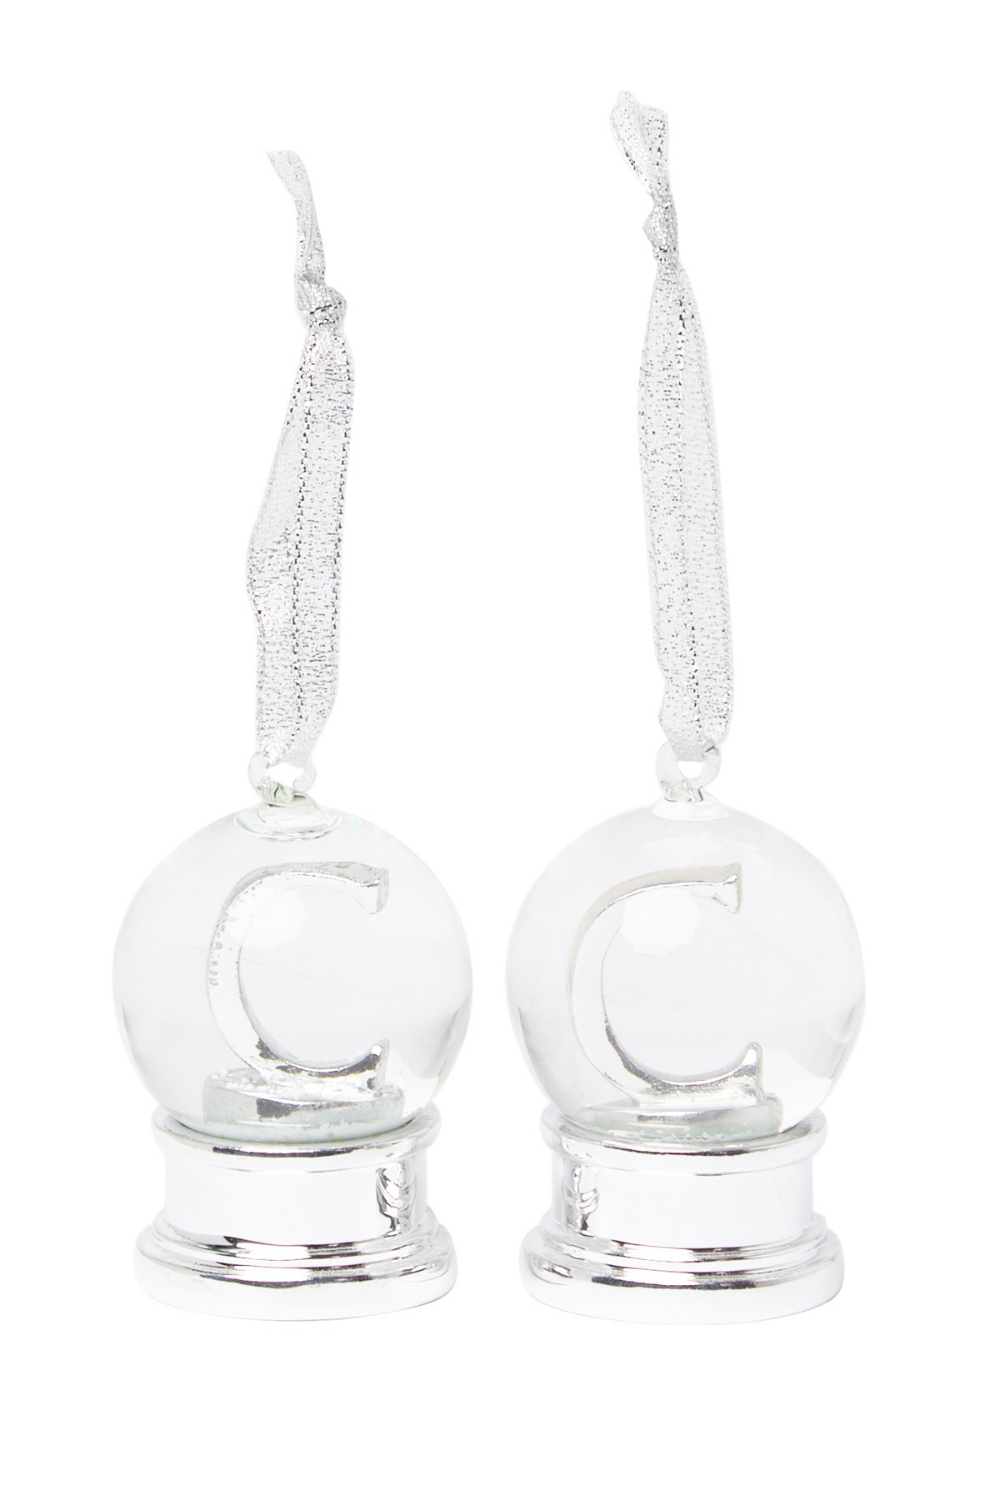 Nordstrom Rack | Silver Monogram Snow Globe Ornament - Set of 2 - Multiple Letters Available | Nordstrom Rack #nordstromrack